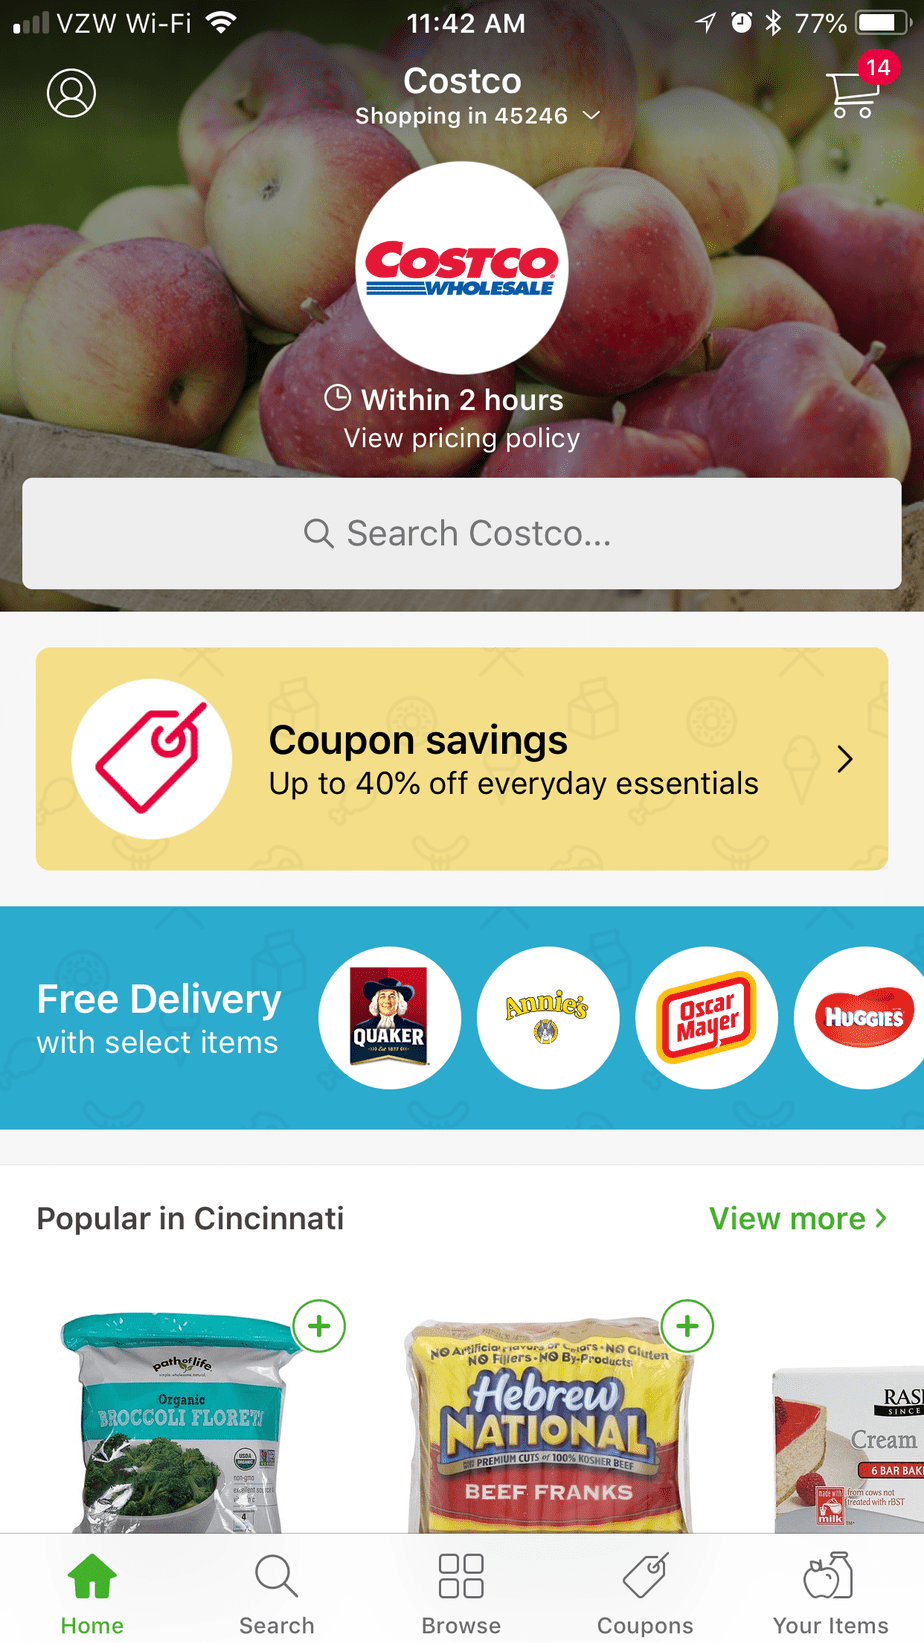 Instacart Shopper App: Save Money with Grocery Delivery Service